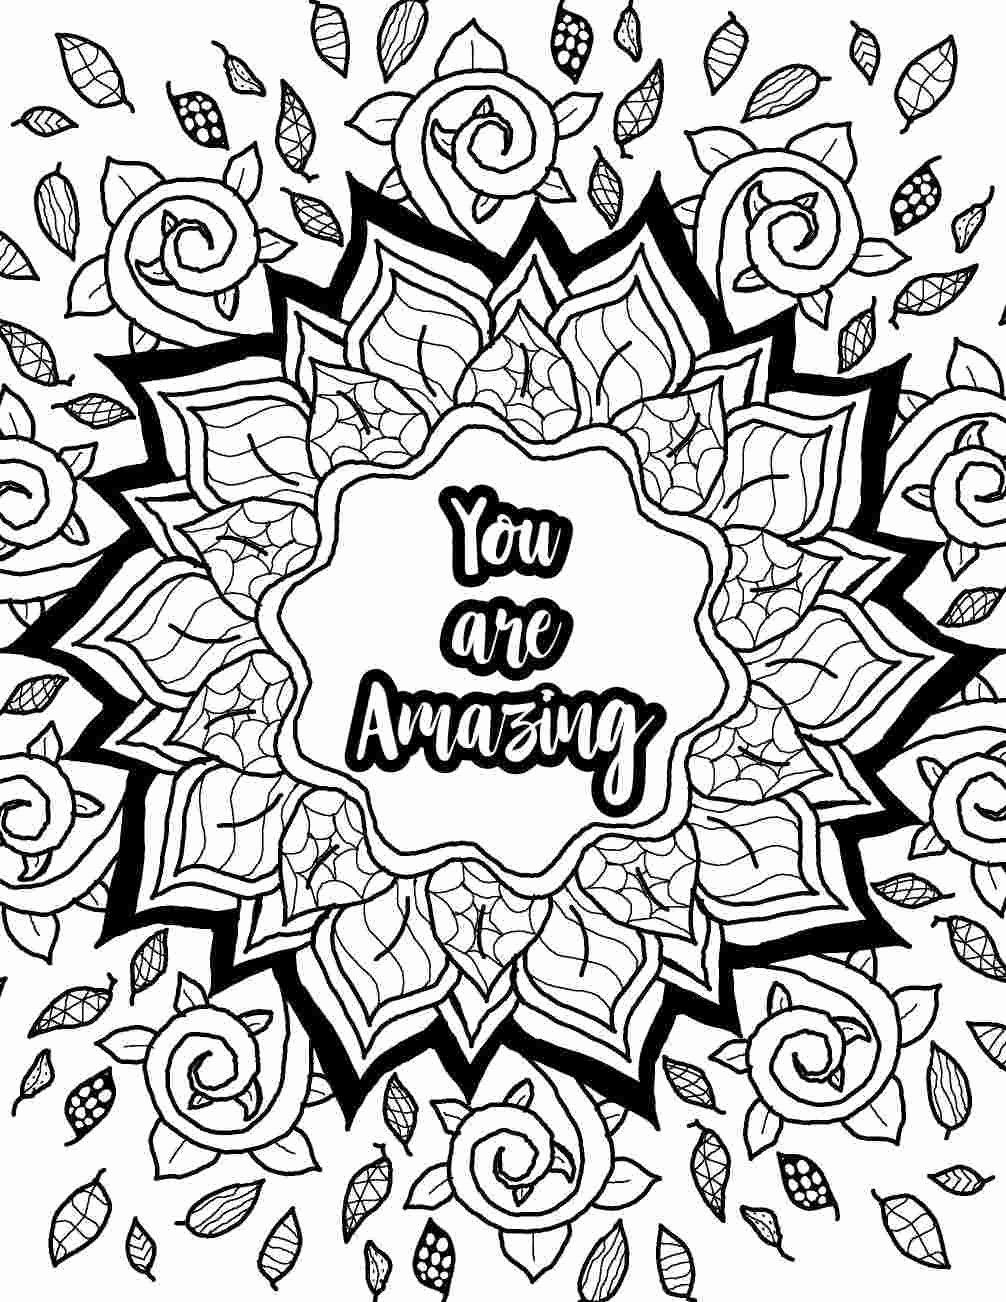 Printable Coloring Pictures For Adults Beautiful Printable Coloring Quotes Pag In 2020 Quote Coloring Pages Printable Adult Coloring Pages Coloring Pages Inspirational